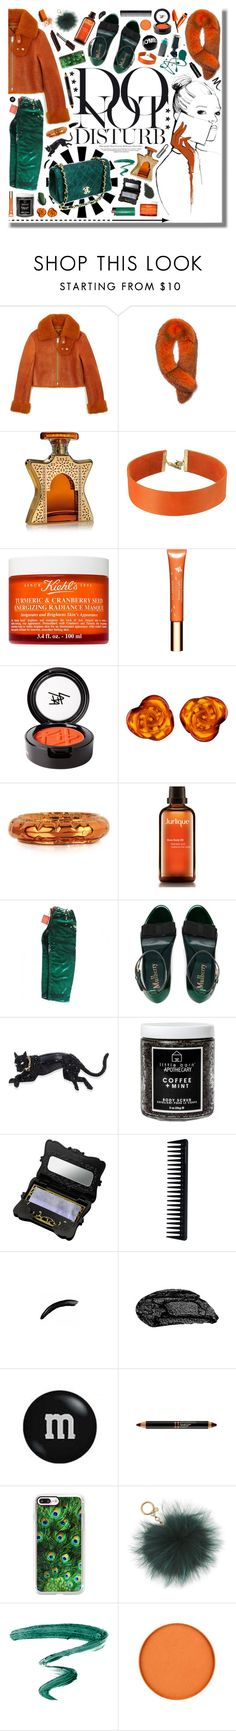 """""""Do not disturb;"""" by jennn ❤ liked on Polyvore featuring HIDE, Anja, Andrew Marc, Bond No. 9, Vanessa Mooney, Kiehl's, Clarins, Beauty Is Life, Be-Jewelled and MM6 Maison Margiela"""